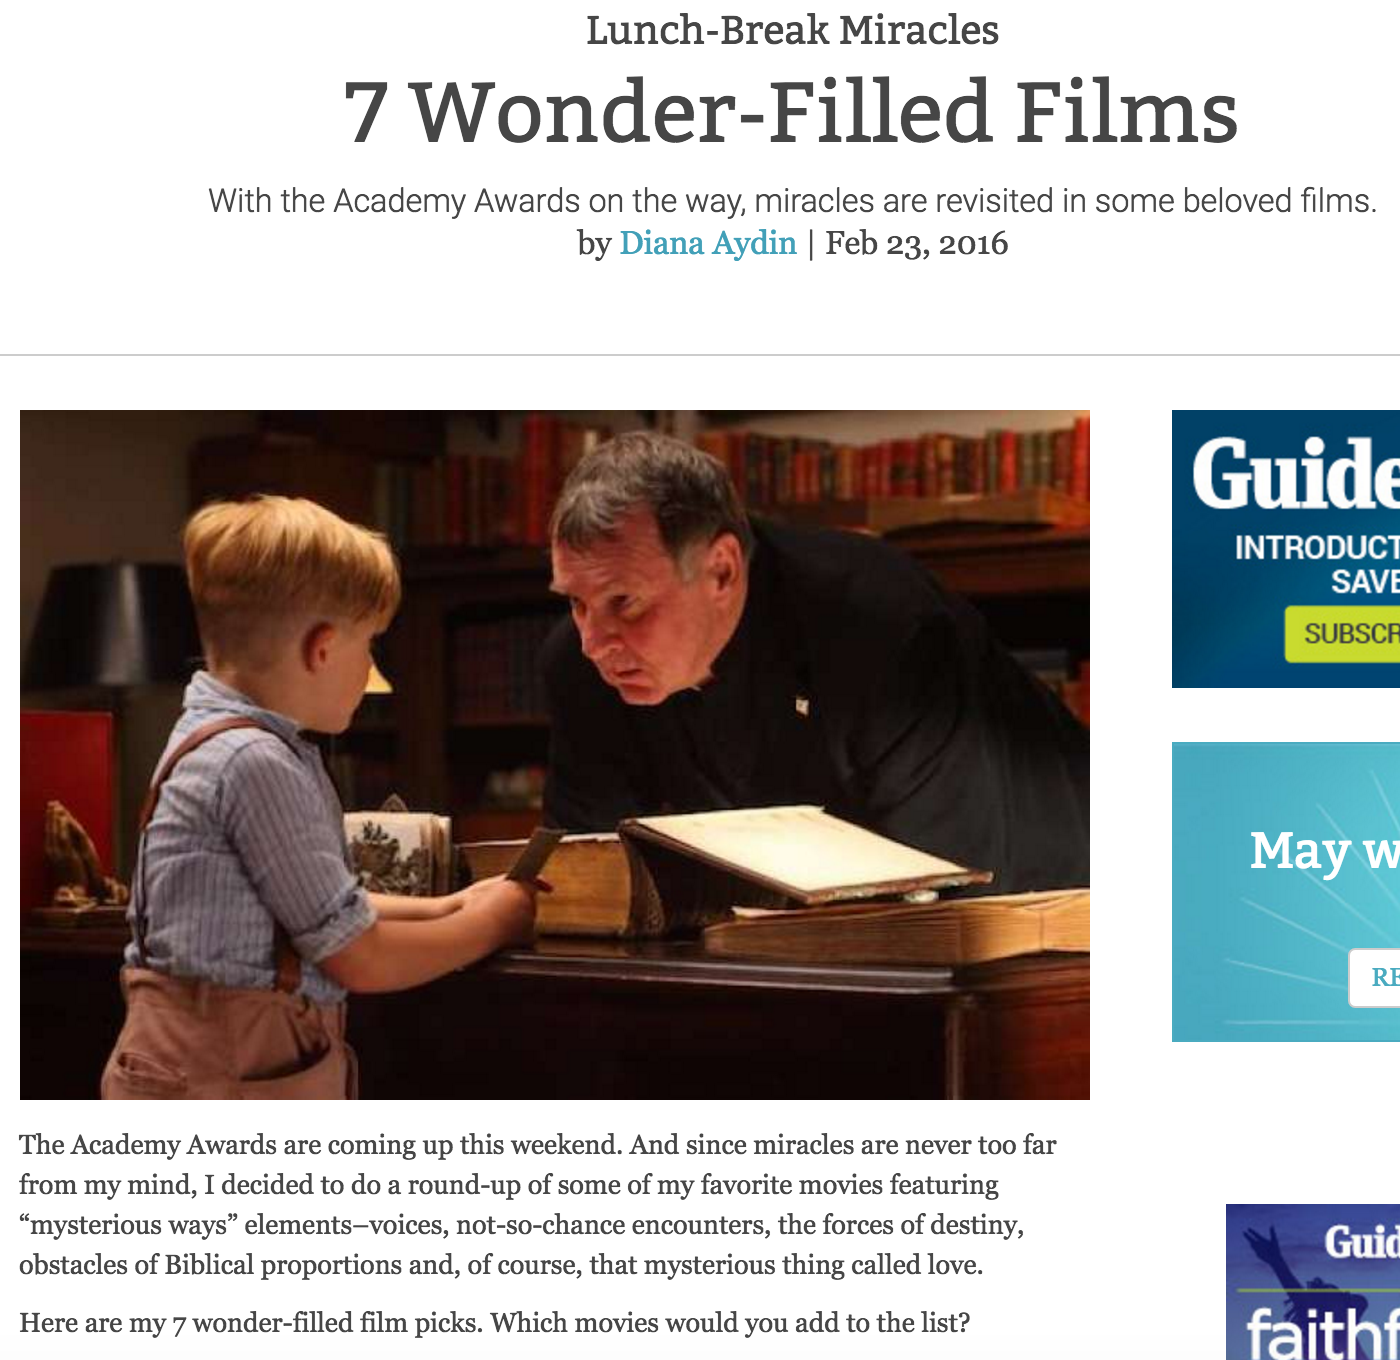 7 Wonder-Filled Films